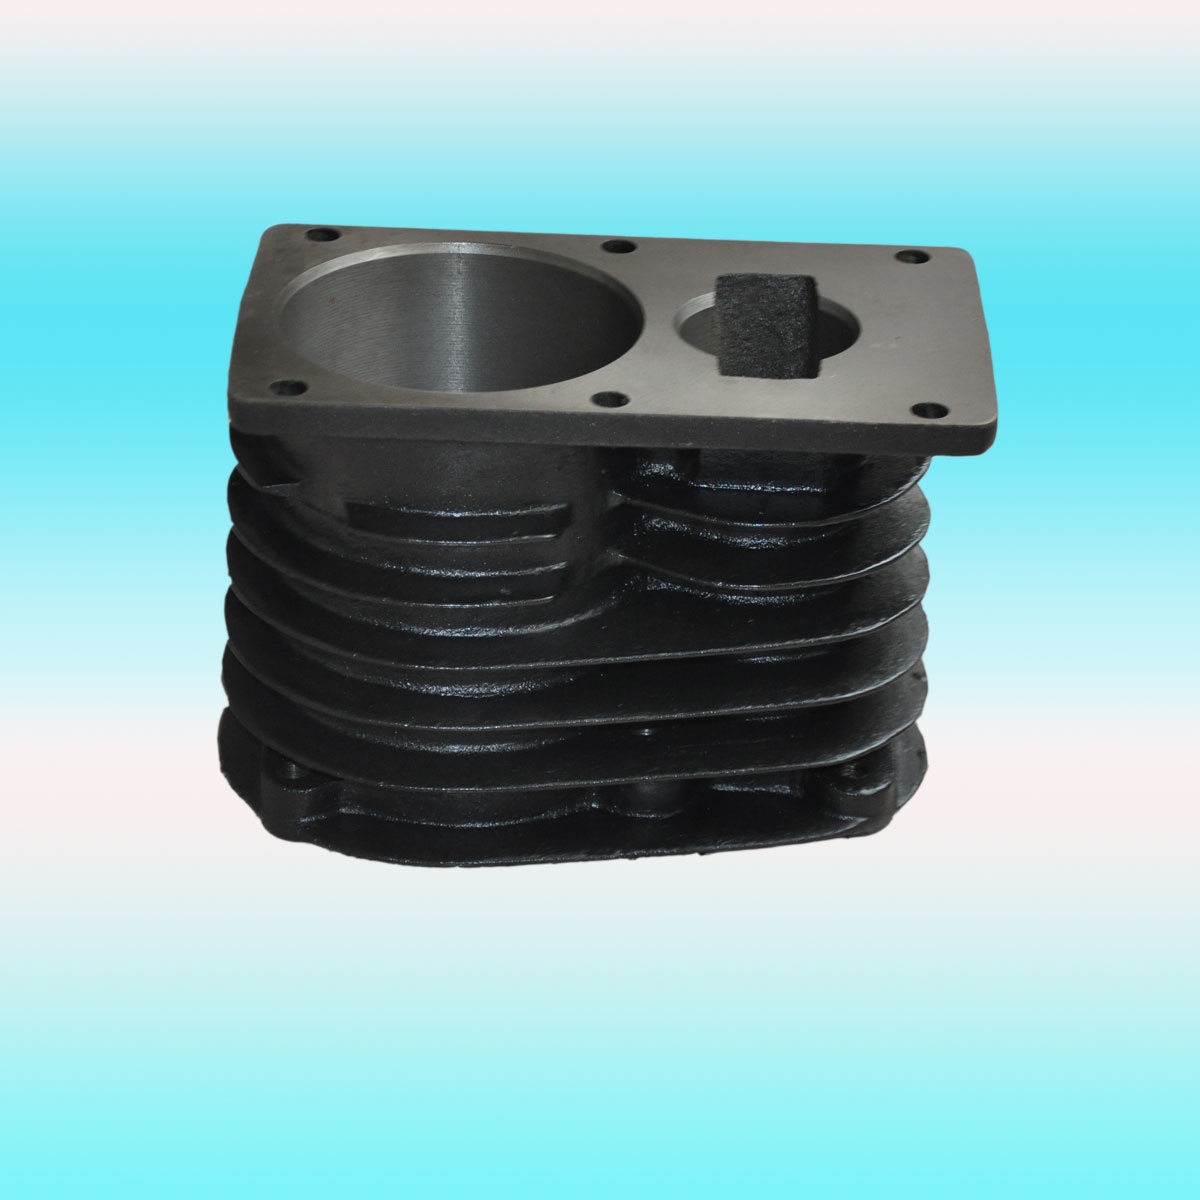 Cylinder Liner, Cylinder Sleeve, EPC, Gray Iron, Ductile Iron, ISO 9001: 2008, Awgt-005